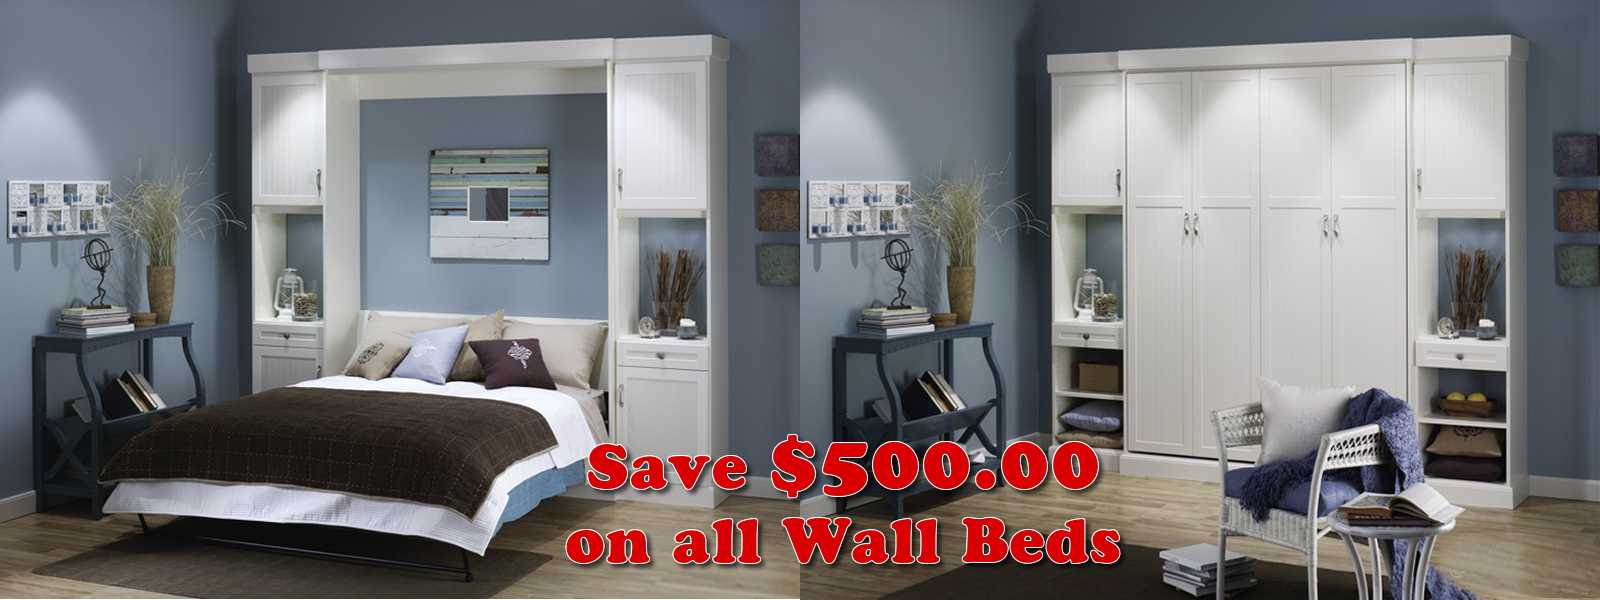 Calgary Custom Wall Beds And Murphy Beds Save 500 On Wall Beds